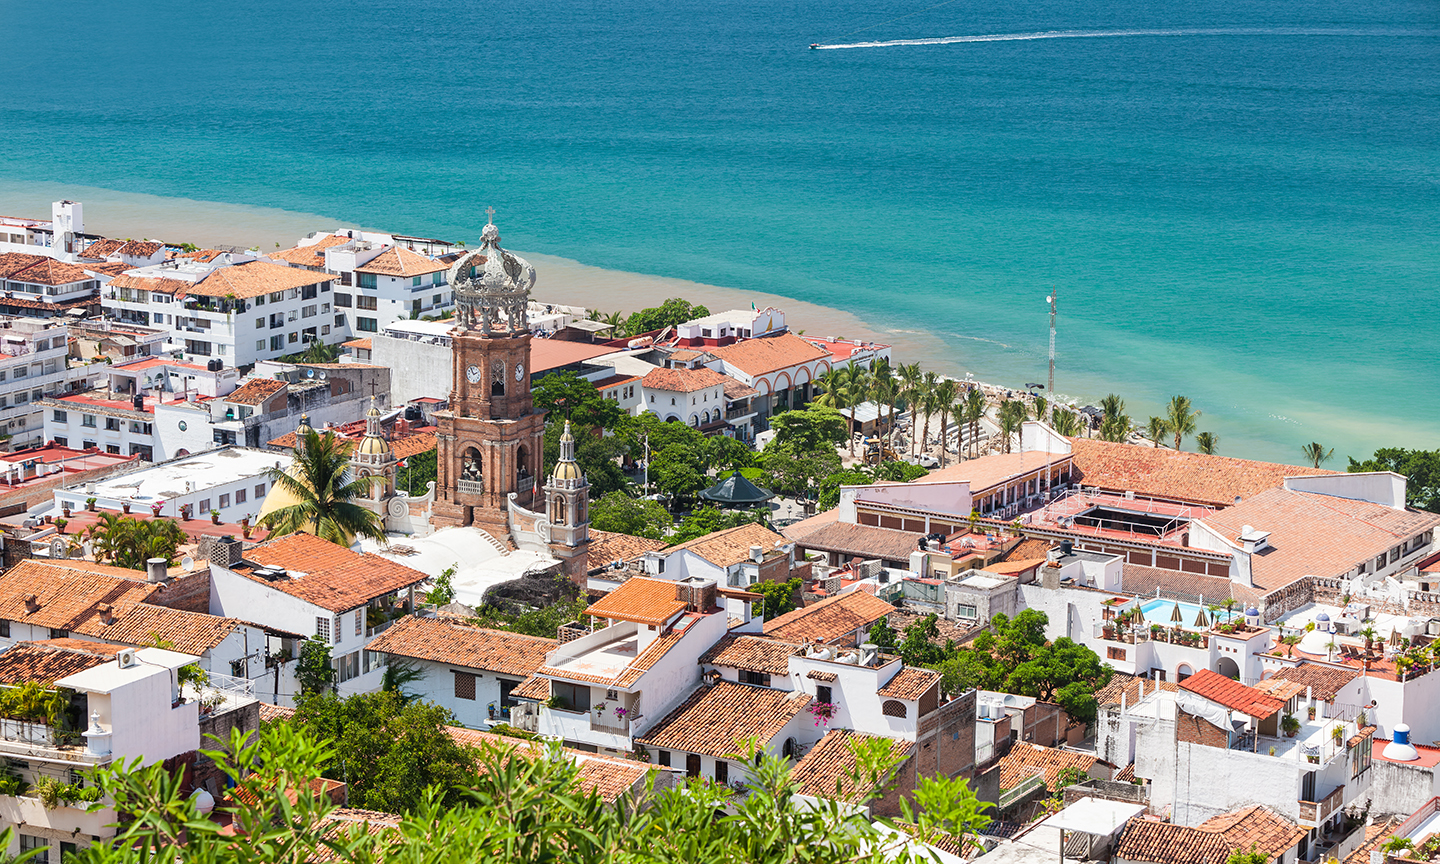 A view over the old town in Puerto Vallarta, Mexico looking toward the sea with a boat in the distance.